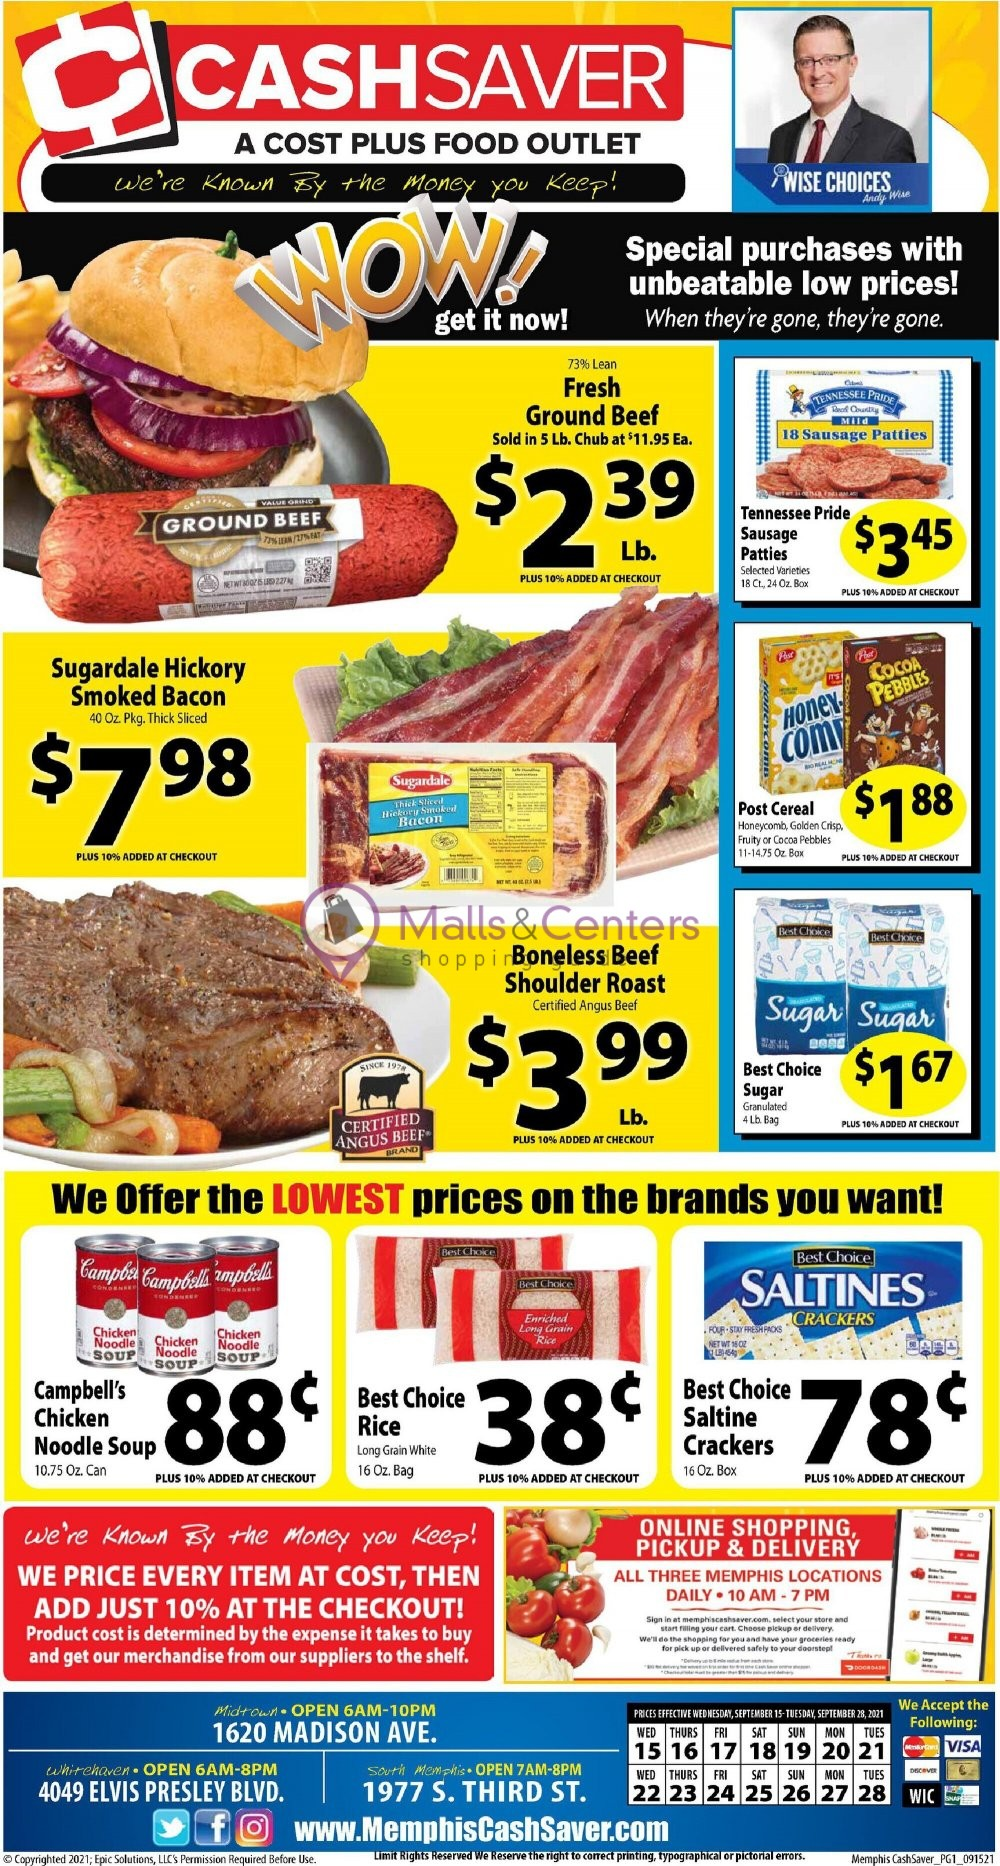 weekly ads Cash Saver Cost Plus Food Outlet - page 1 - mallscenters.com